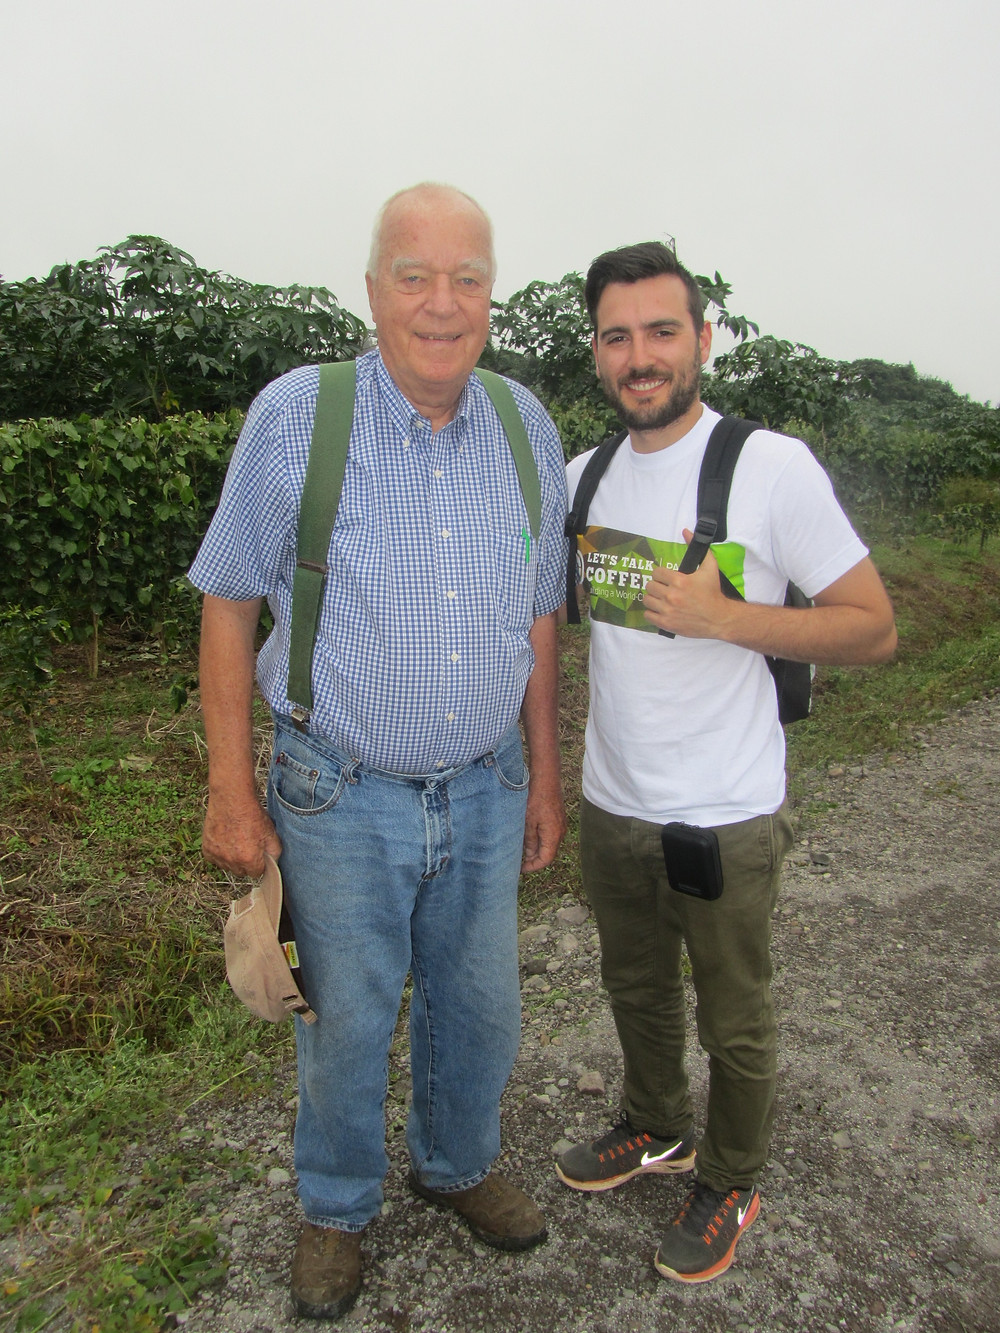 Photo with owner, Price Petersen